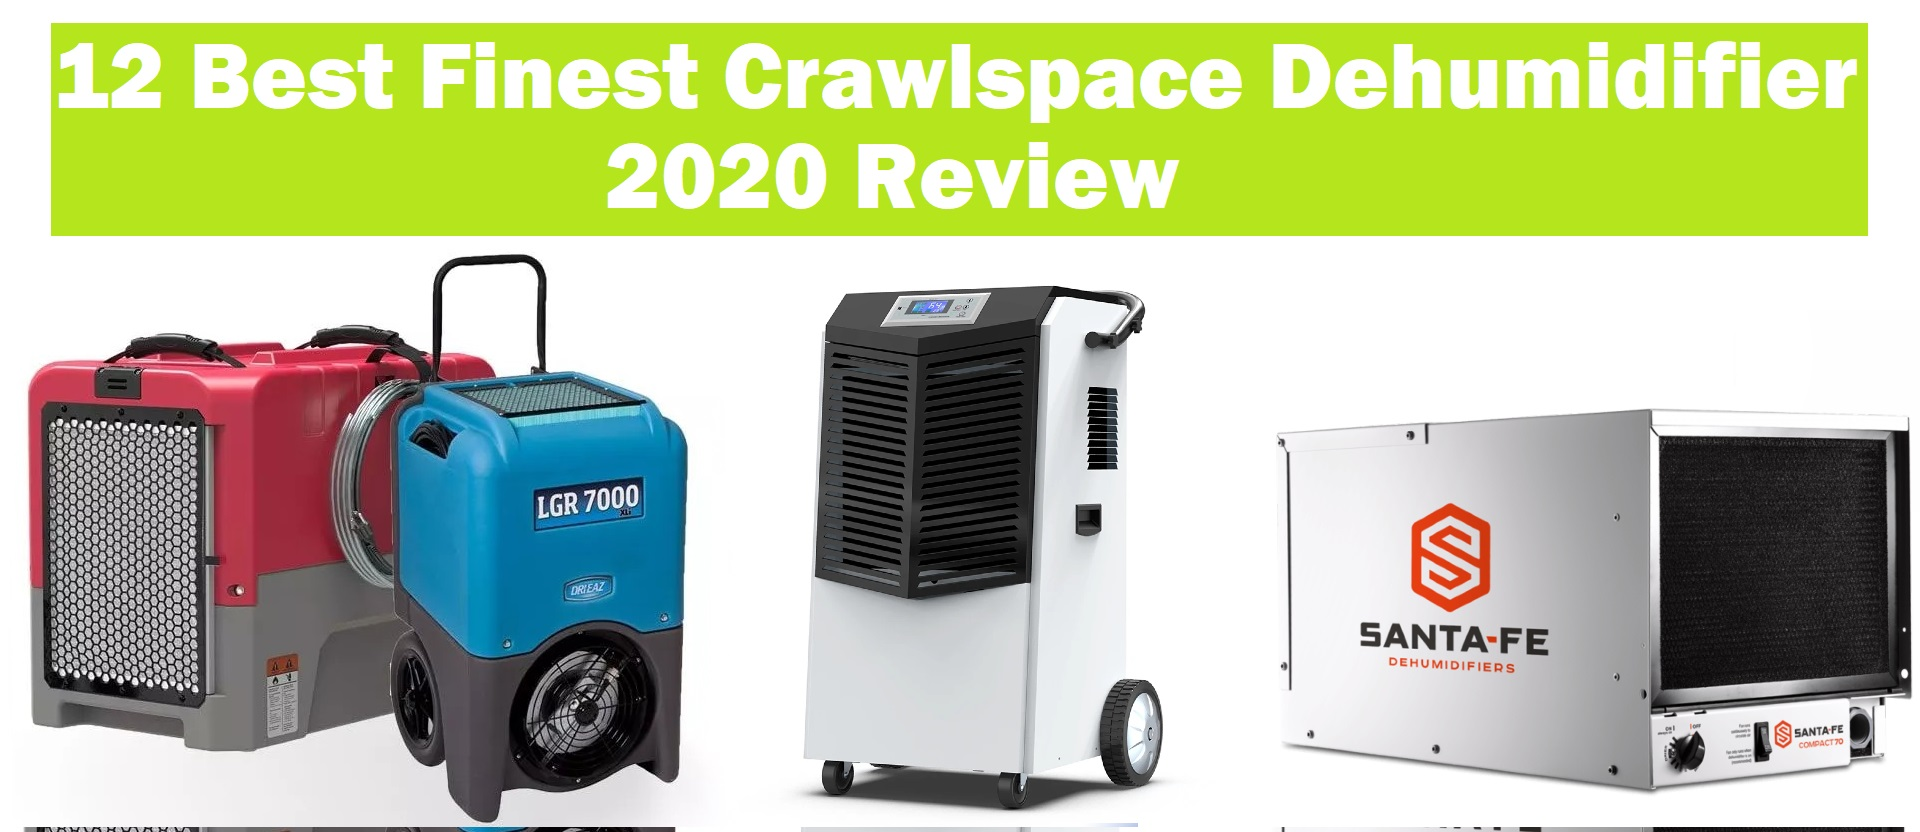 12 Best Finest Crawlspace Dehumidifier 2020 Review for Basement, Whole House Too.